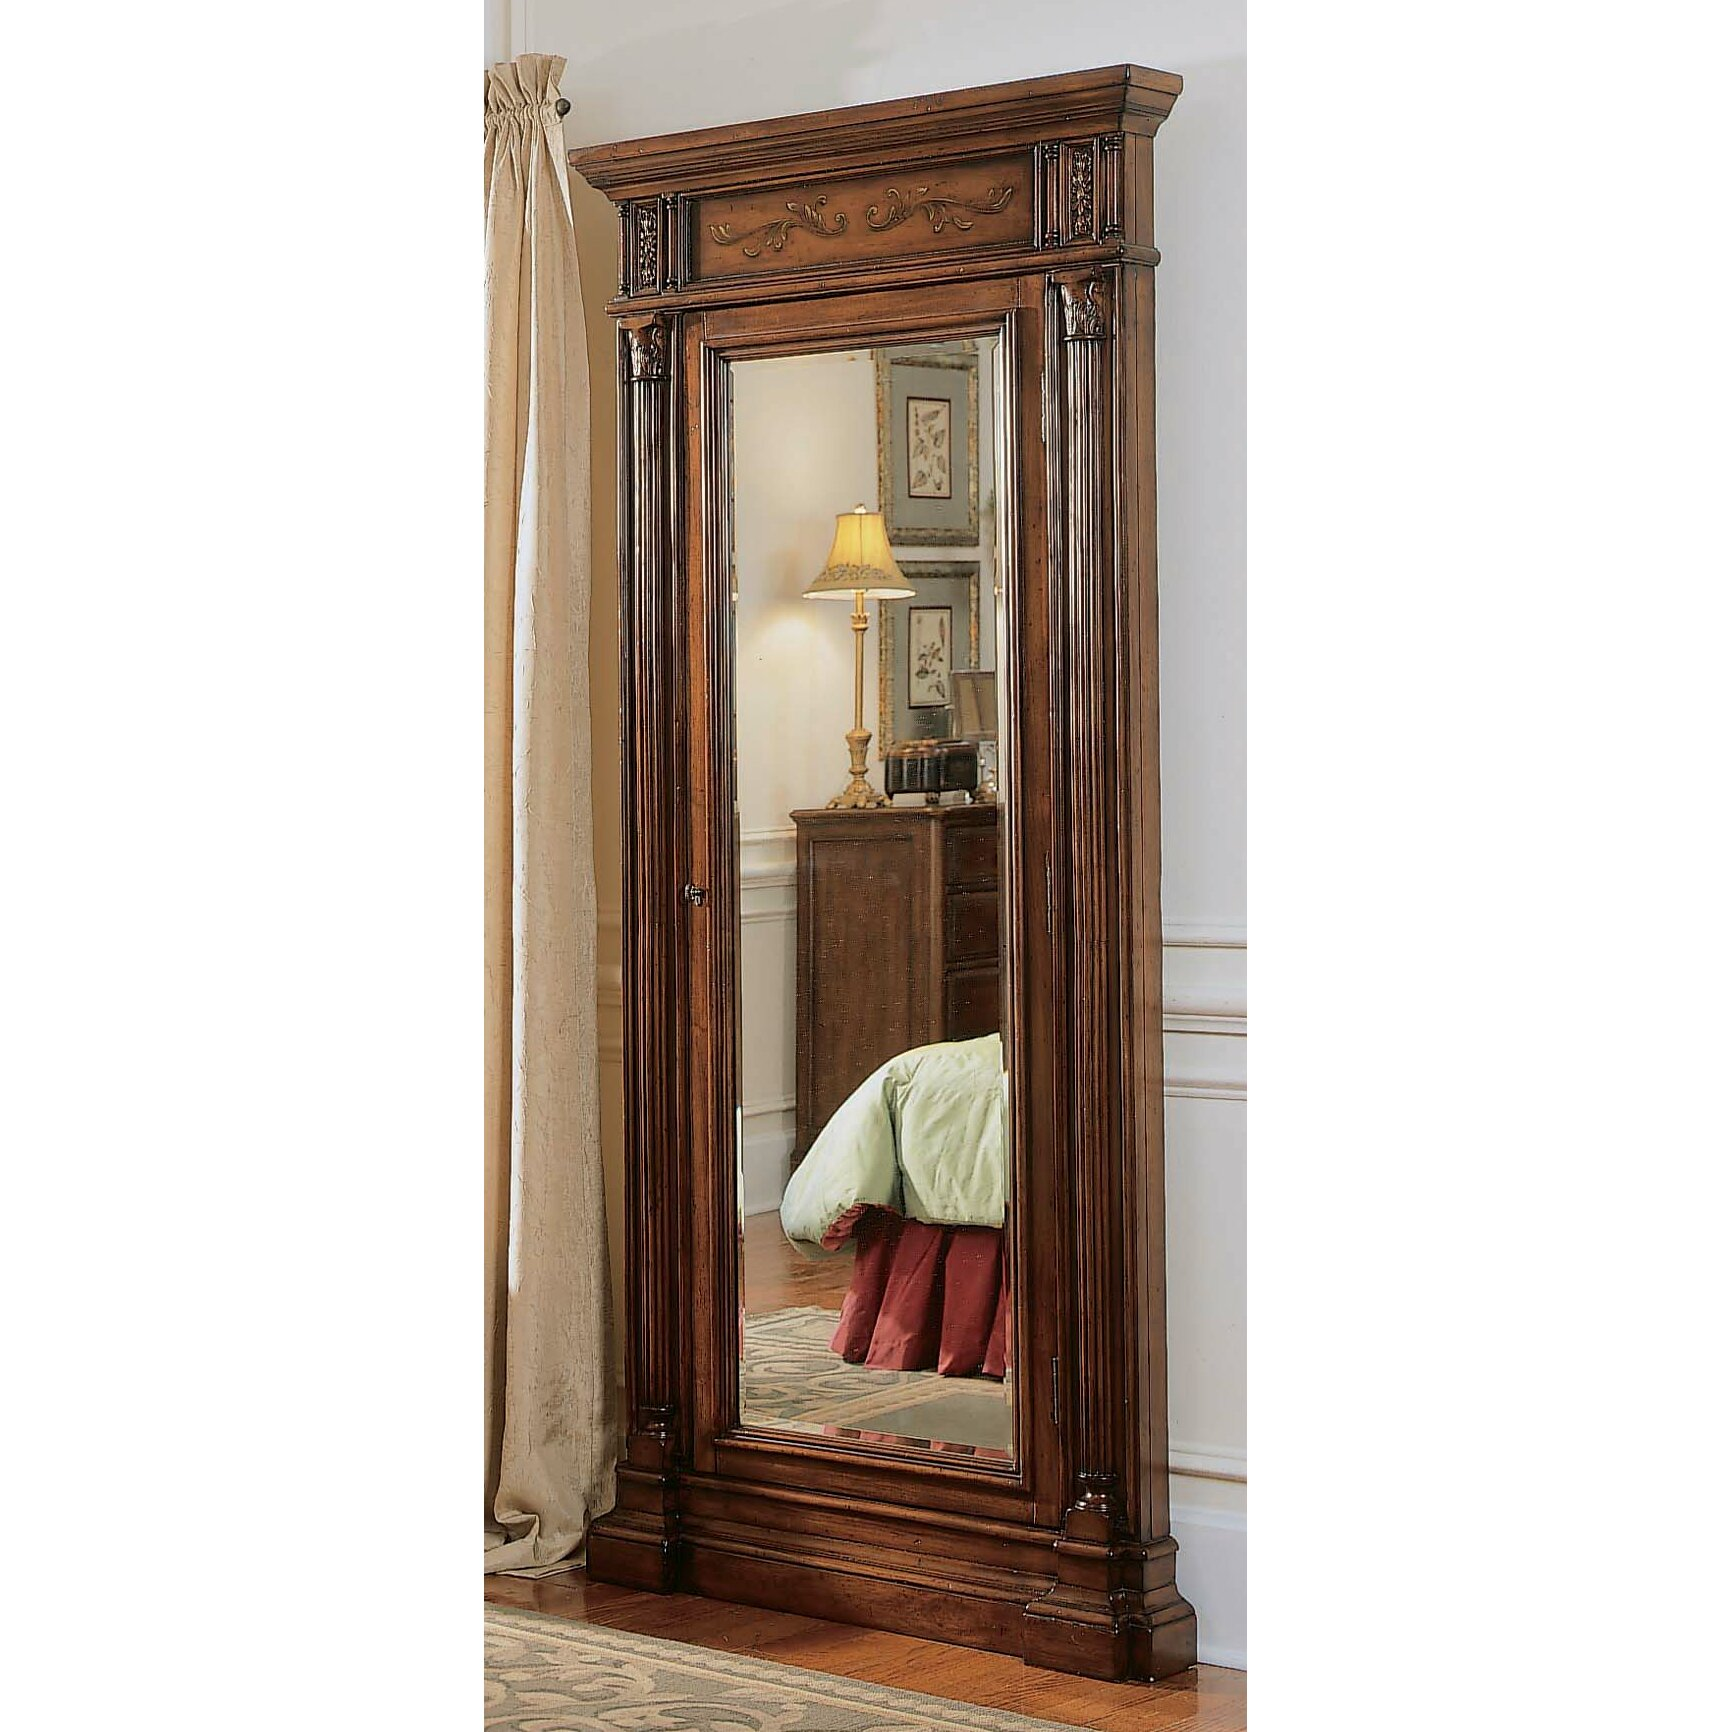 Hooker Furniture Seven Seas Jewelry Armoire with Mirror